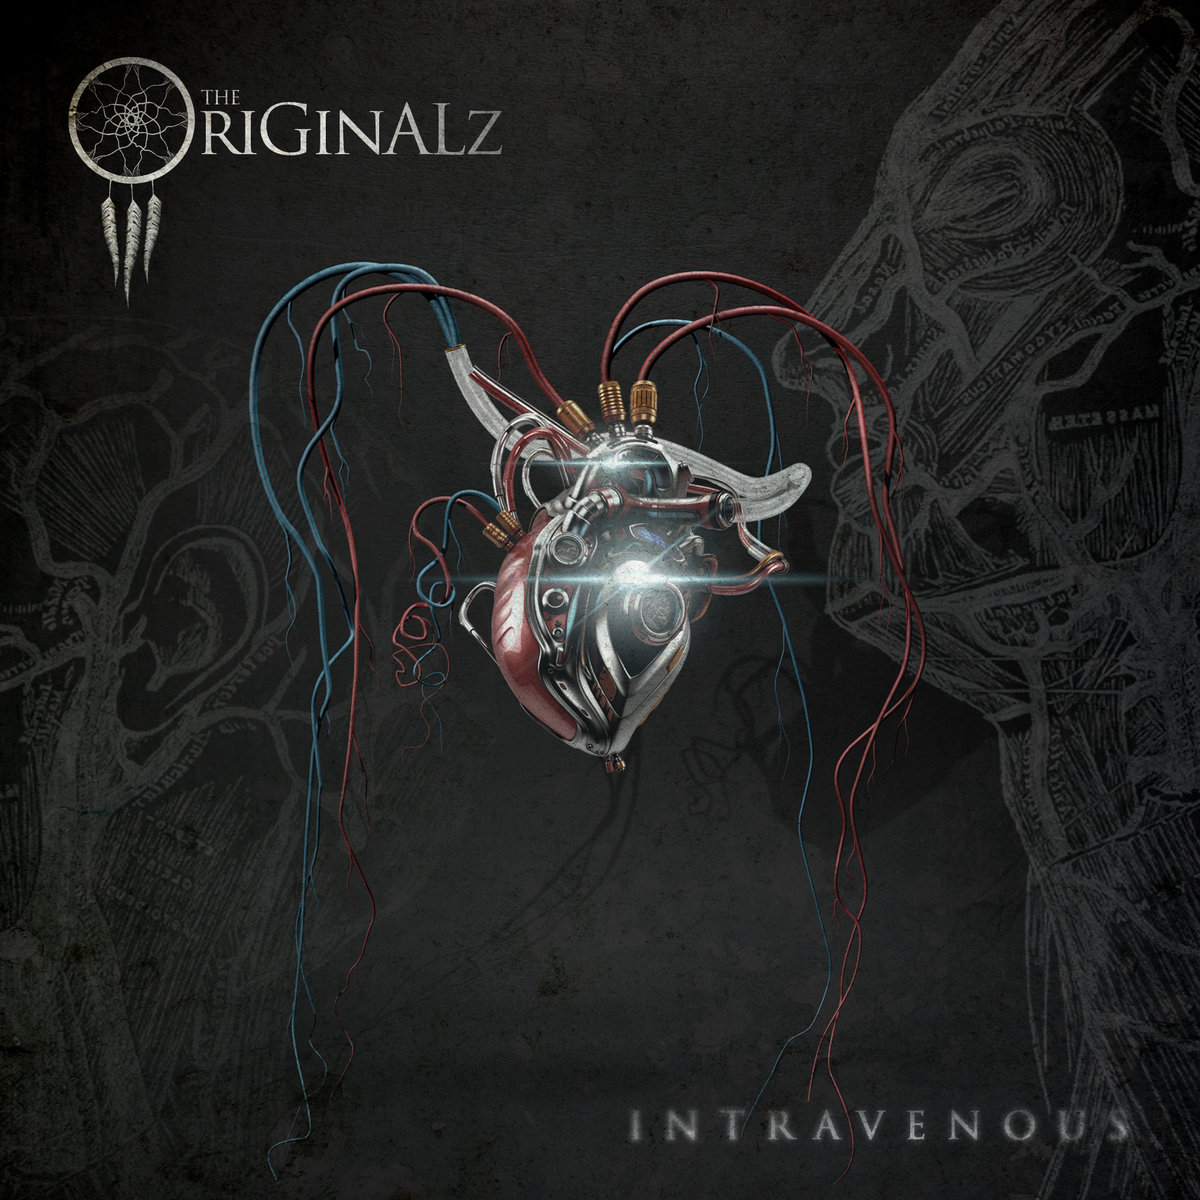 The OriGinALz - Purple Unicorn @ 'Intravenous' album (Austin)